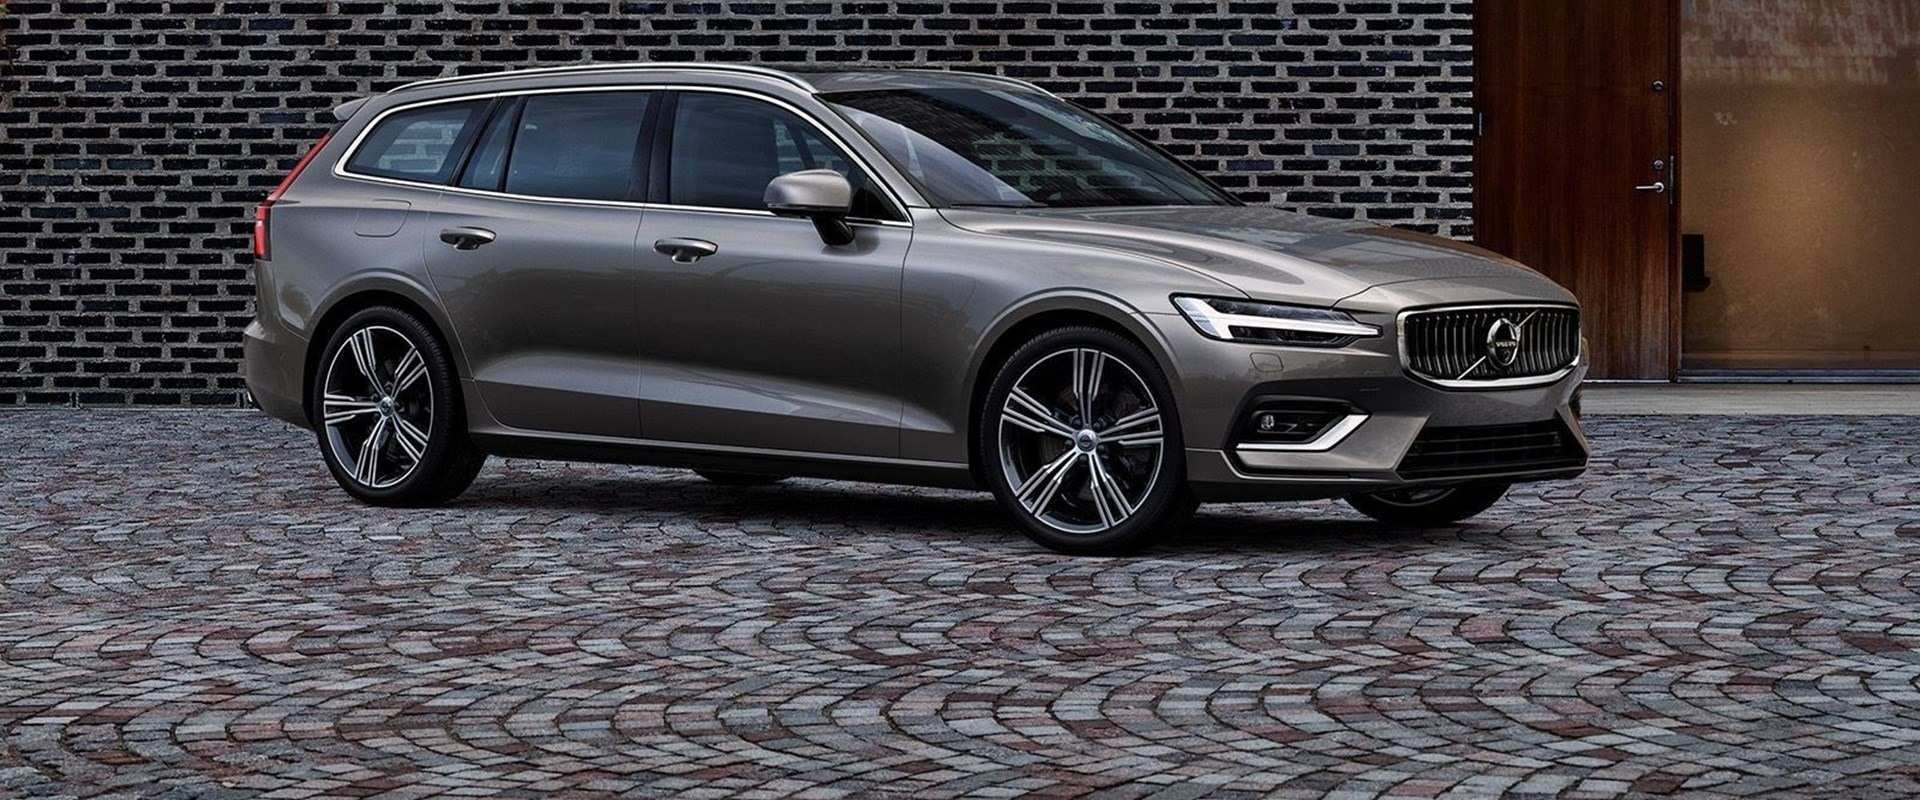 66 The 2019 Volvo Xc90 Release Date Wallpaper